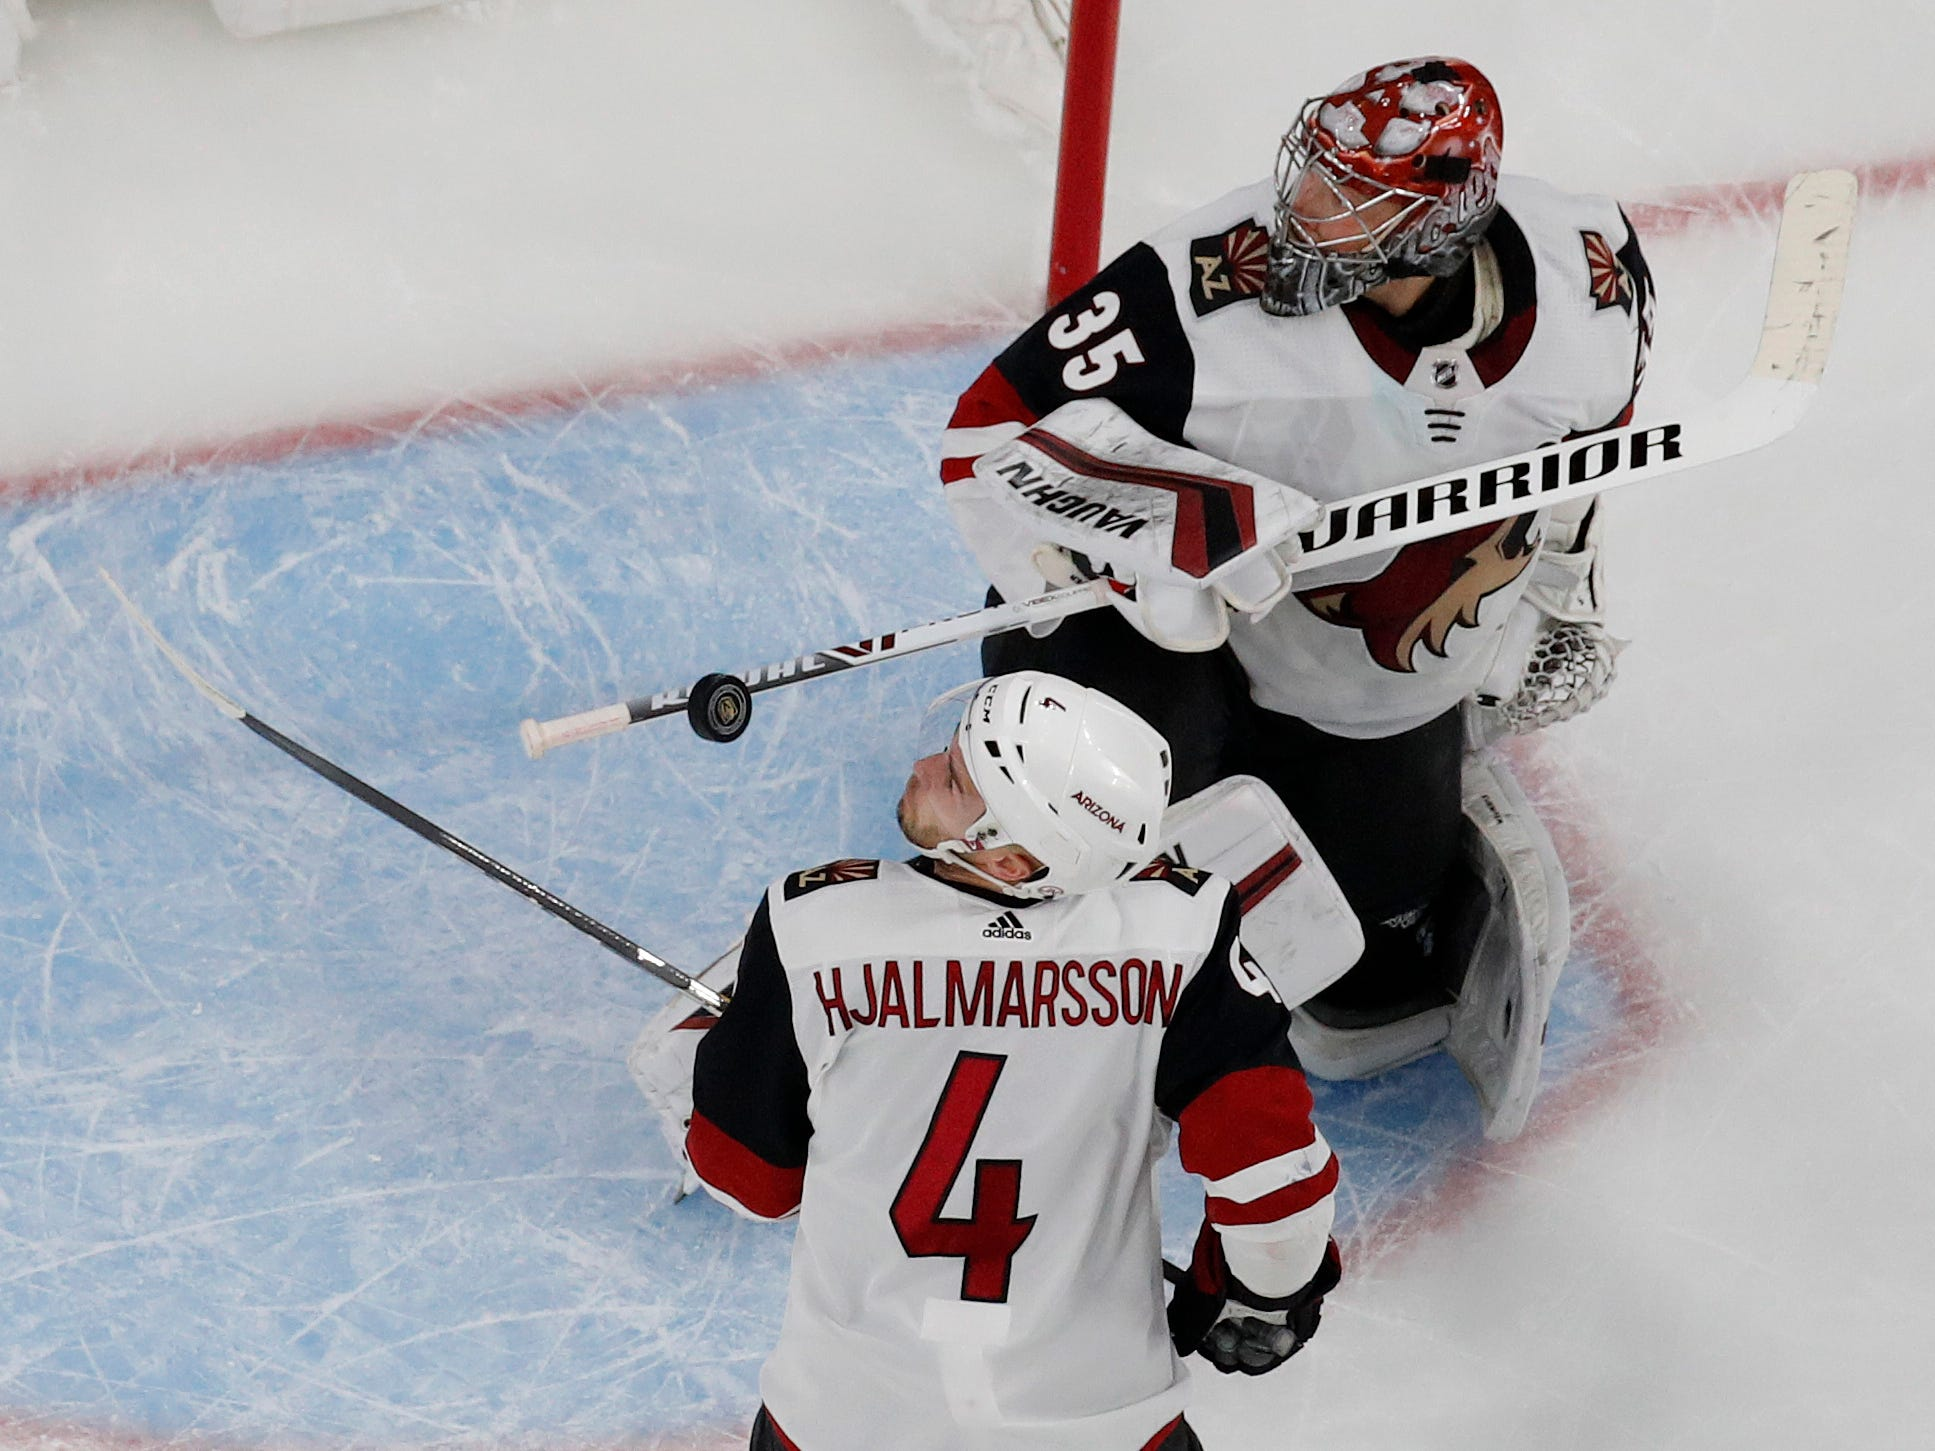 Arizona Coyotes defenseman Niklas Hjalmarsson (4) watches the puck after Arizona Coyotes goaltender Darcy Kuemper (35) made a save during the first period of an NHL hockey game Tuesday, Feb. 12, 2019, in Las Vegas. (AP Photo/John Locher)